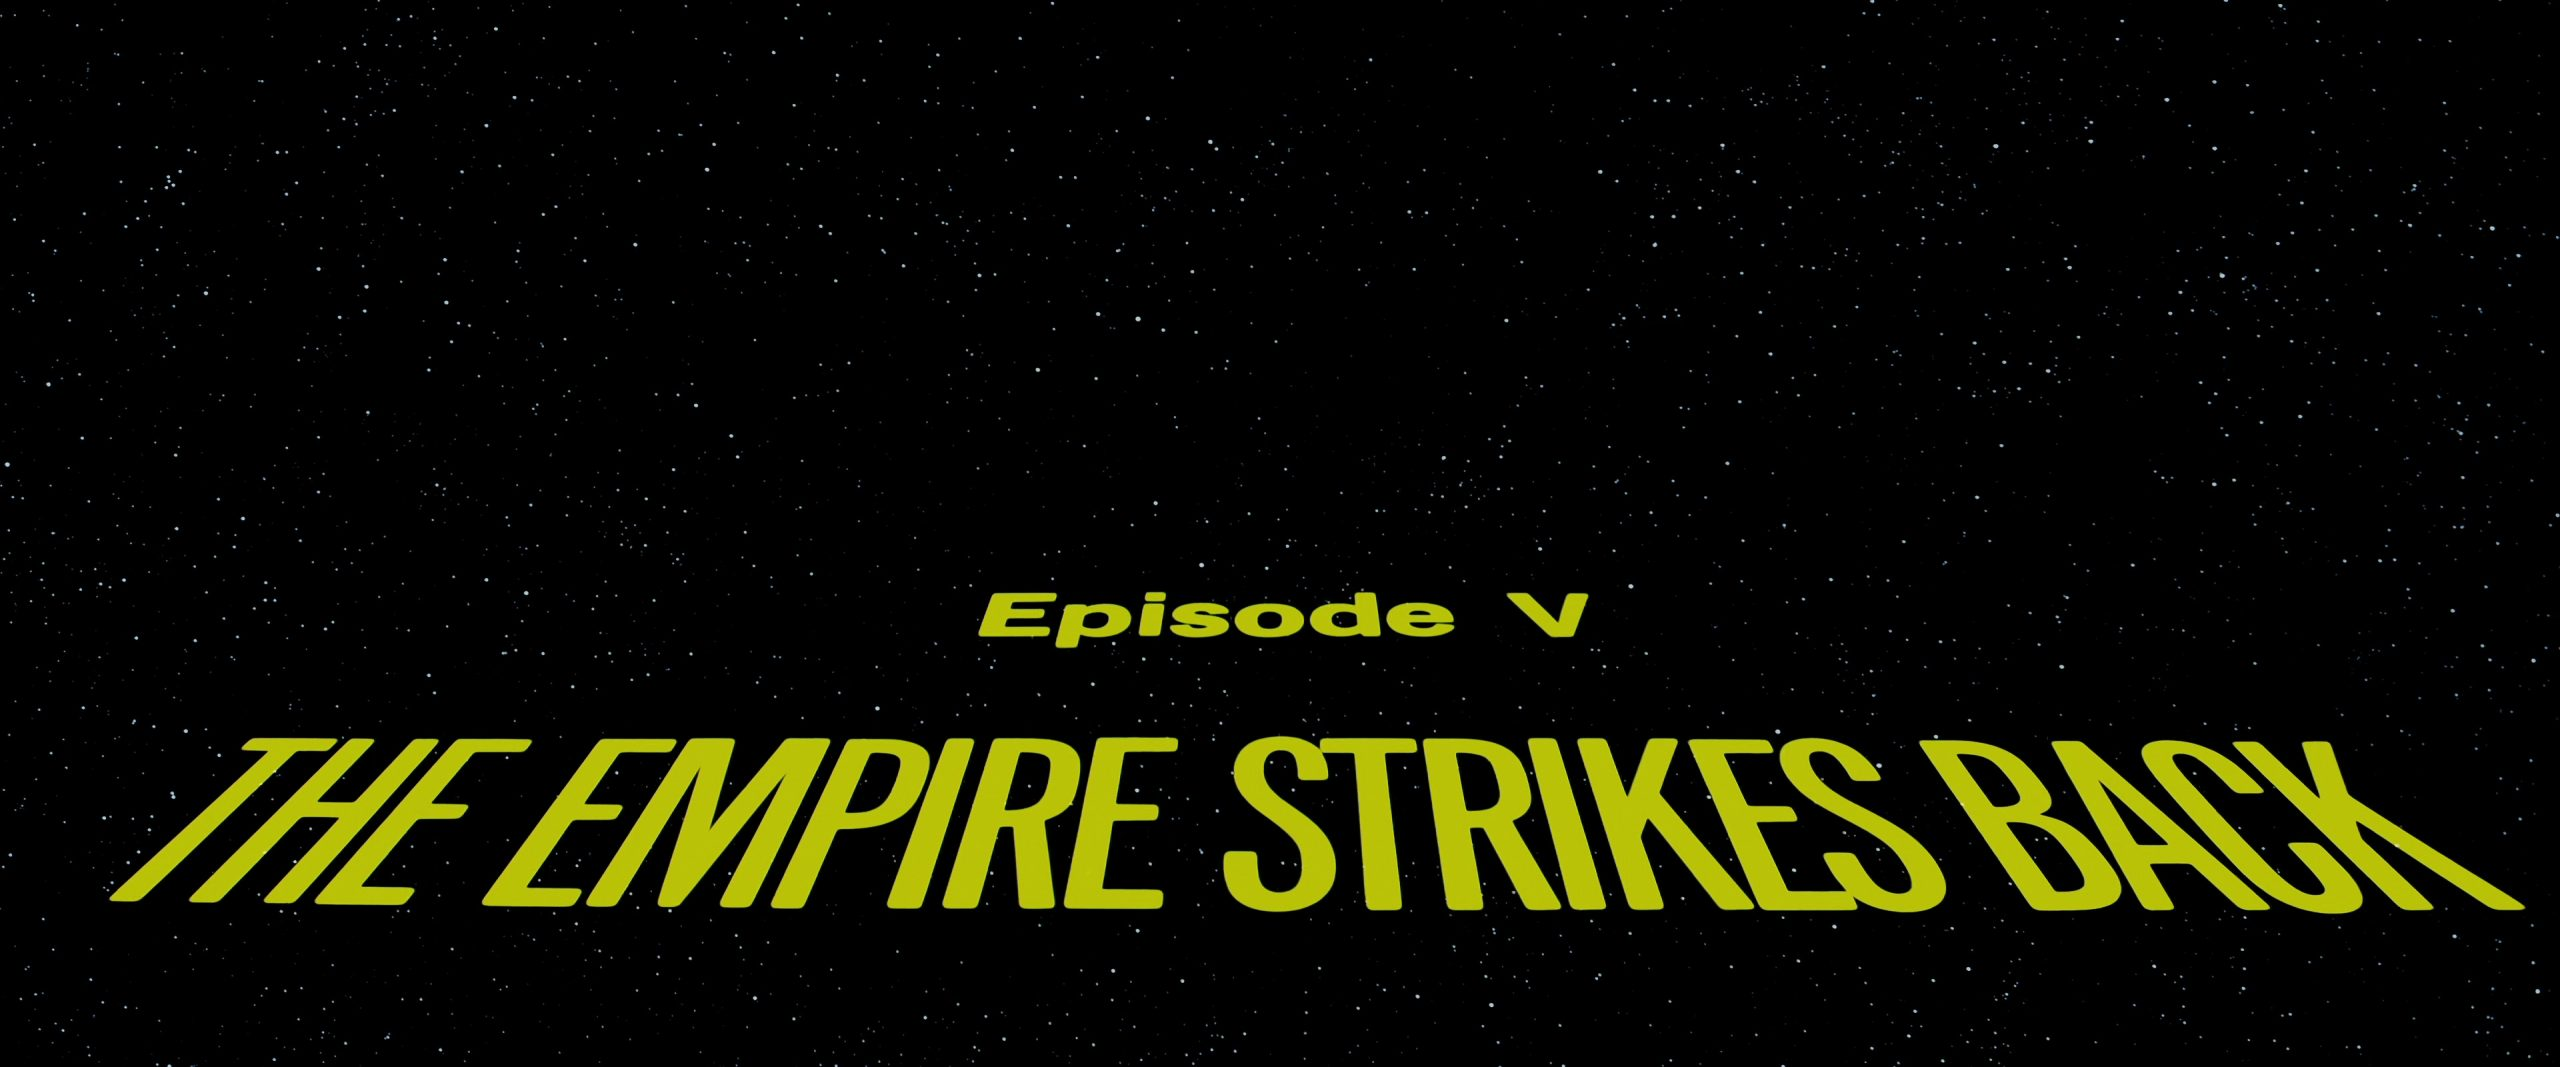 Star Wars: Episode V – The Empire Strikes Back (1980) [4K]